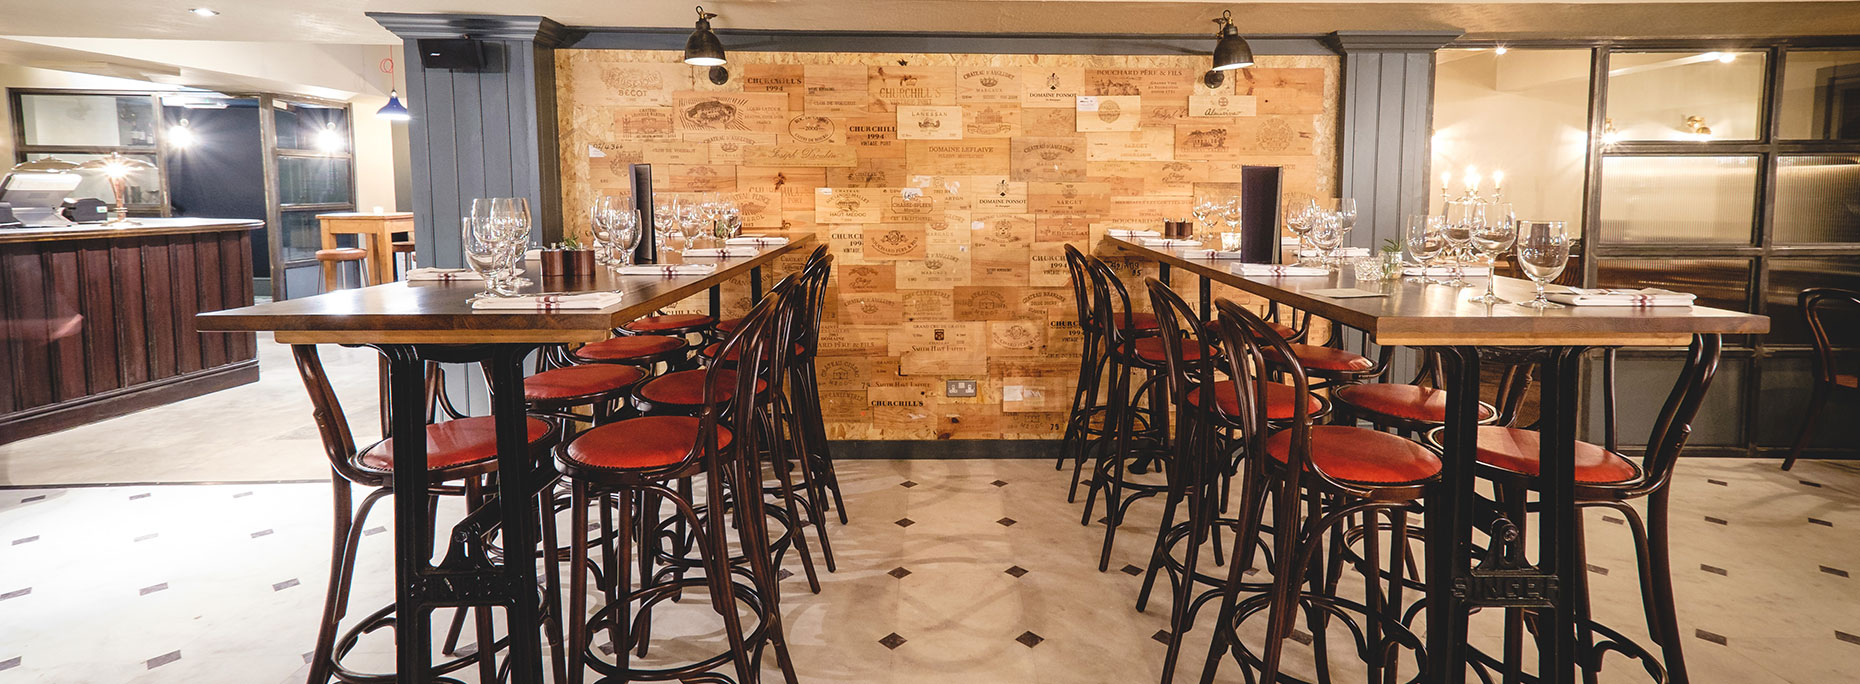 Holborn Dining Room Offers